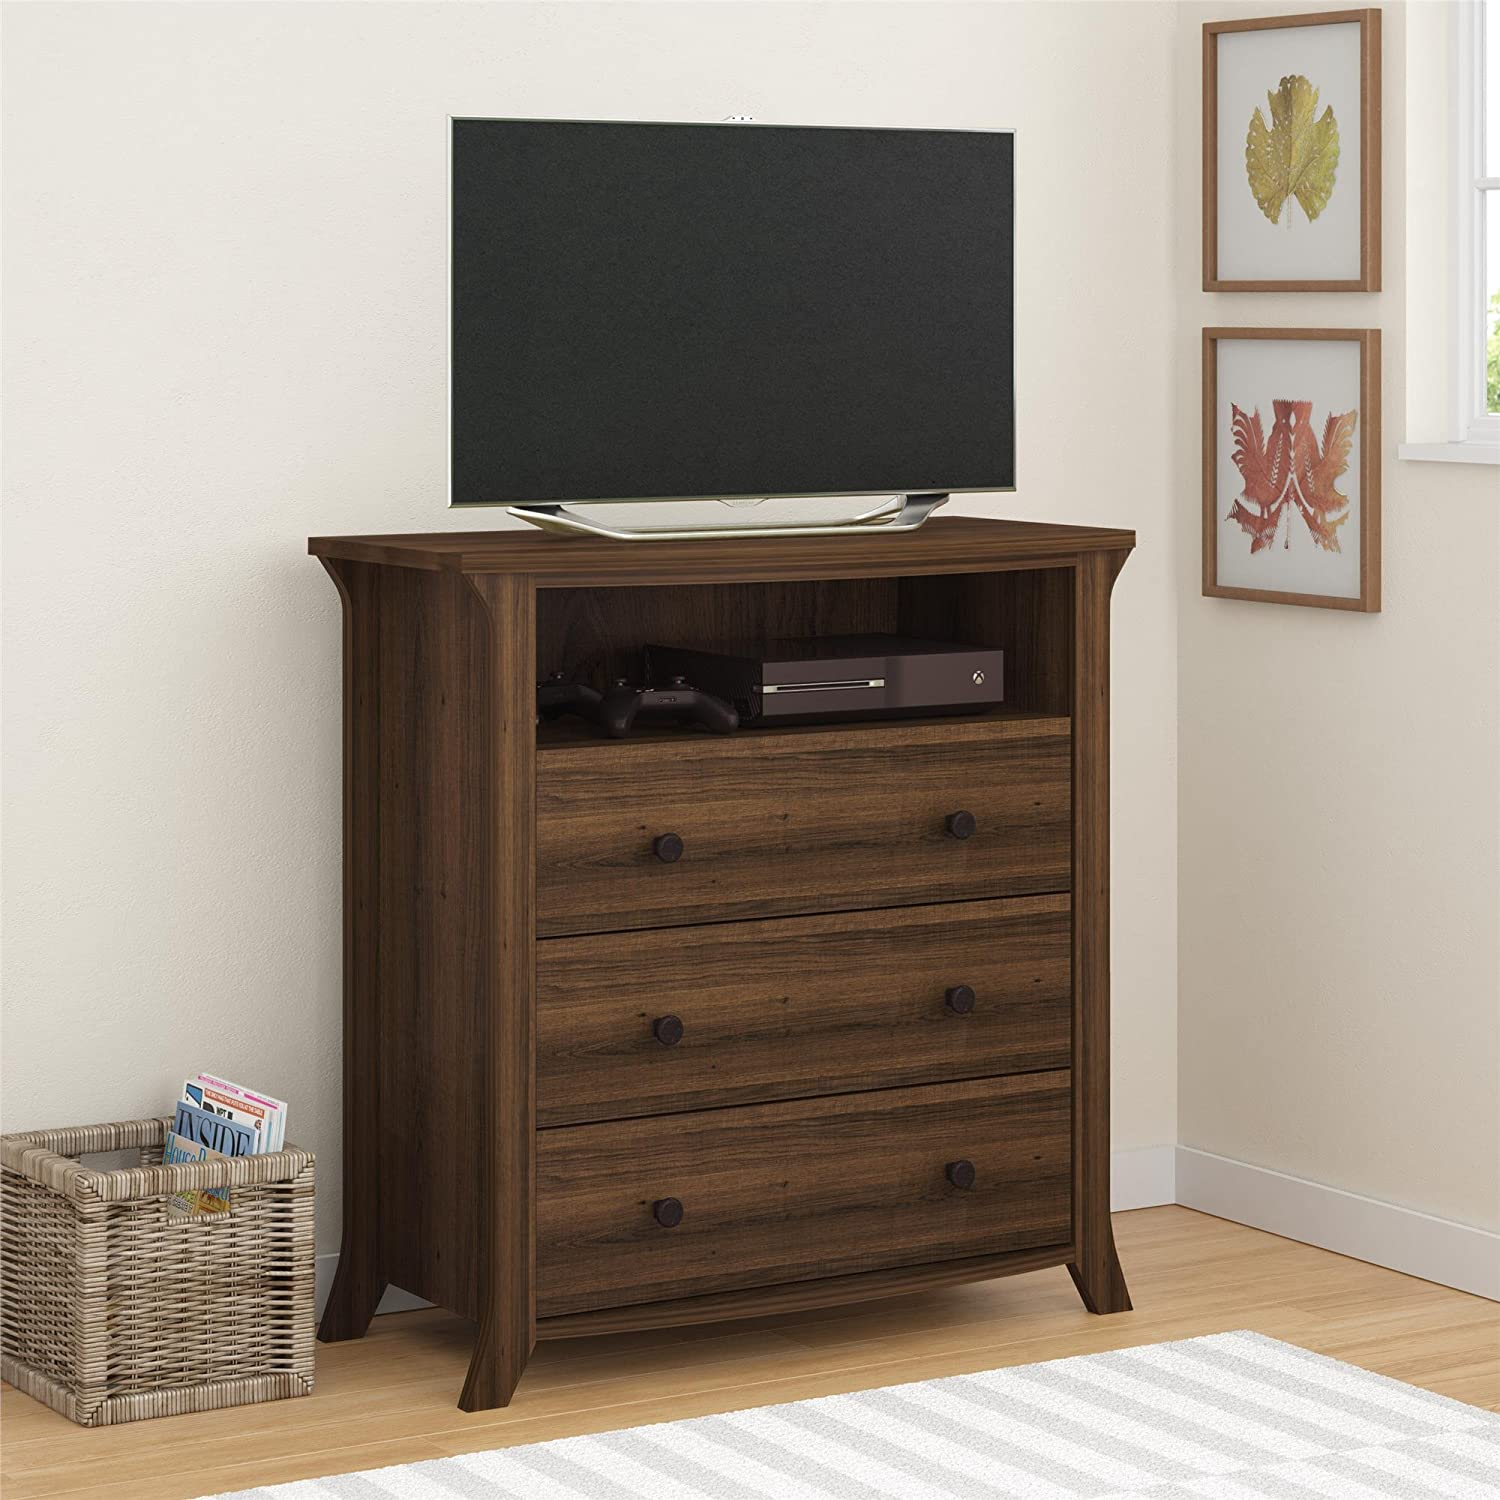 qlt media chest with drawers home essential p wid hei prod anderson